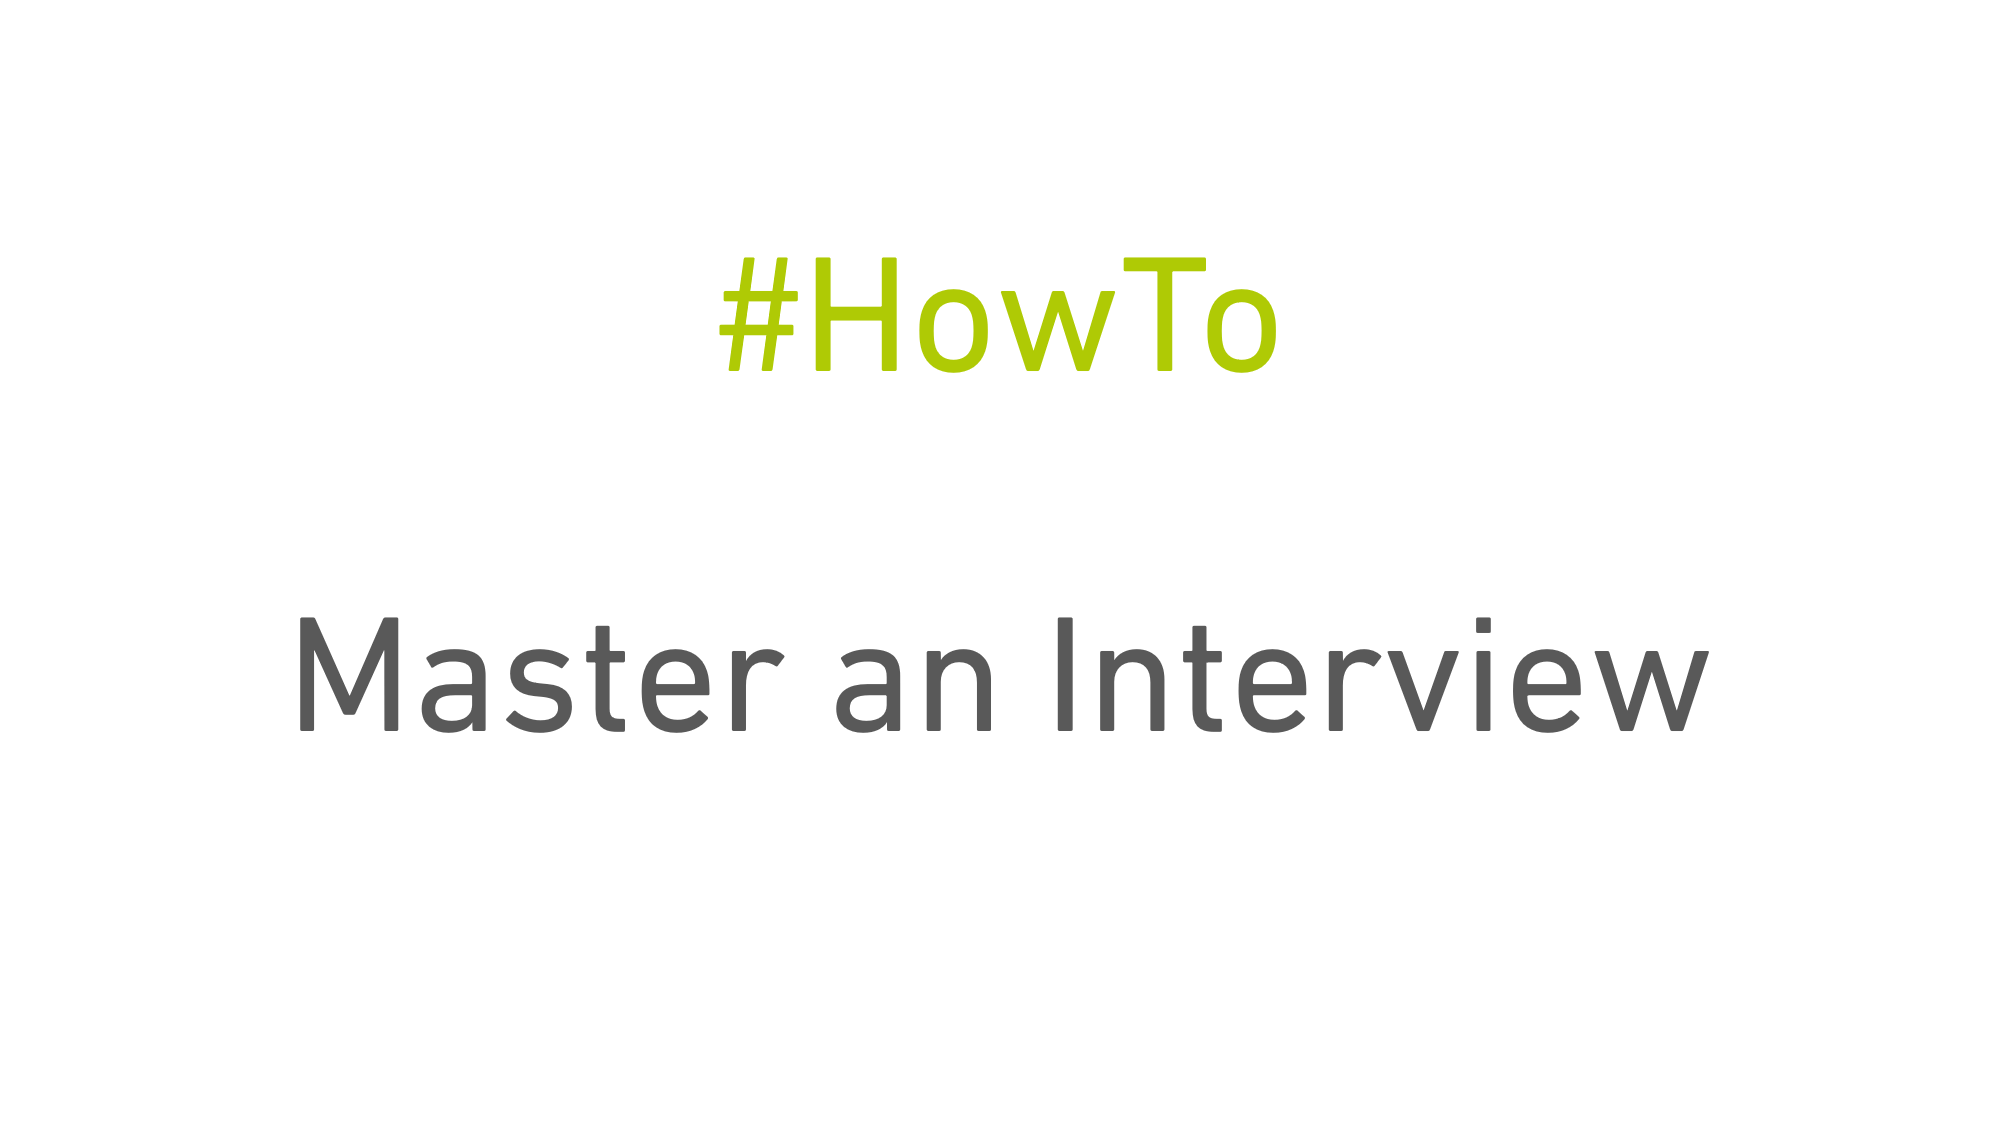 How to master an interview